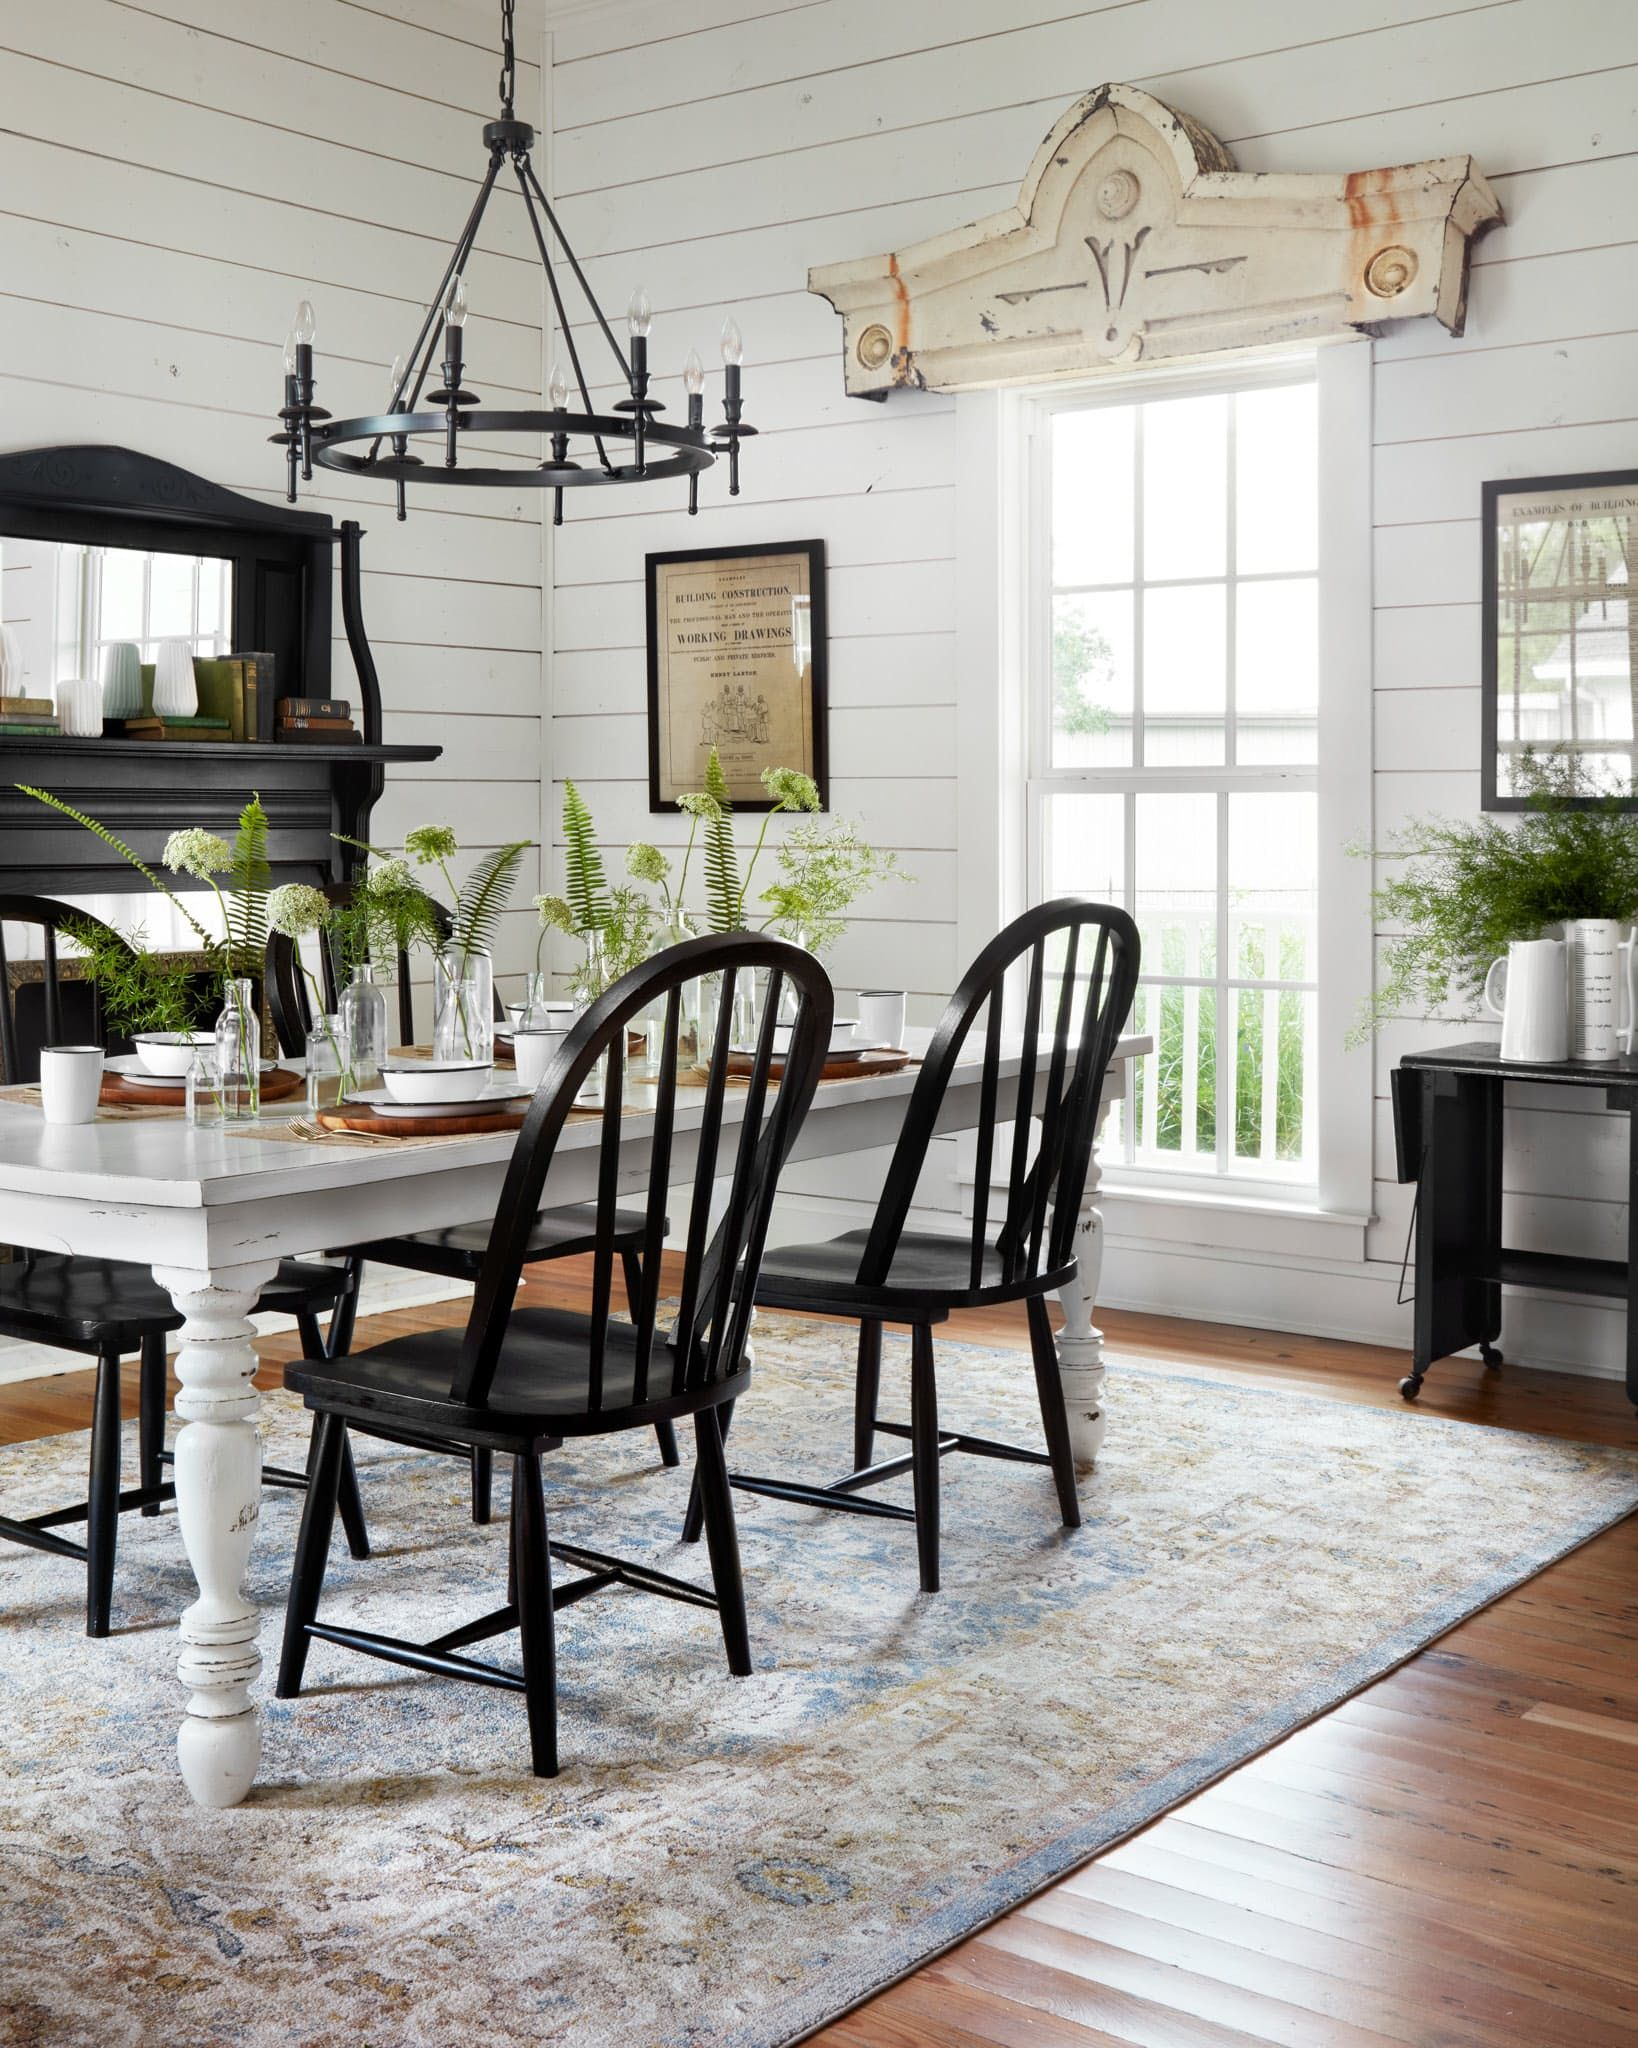 Joanna Gaines Farmhouse Dining Room We Are So In Love With Joanna Gaines New Rug Collection